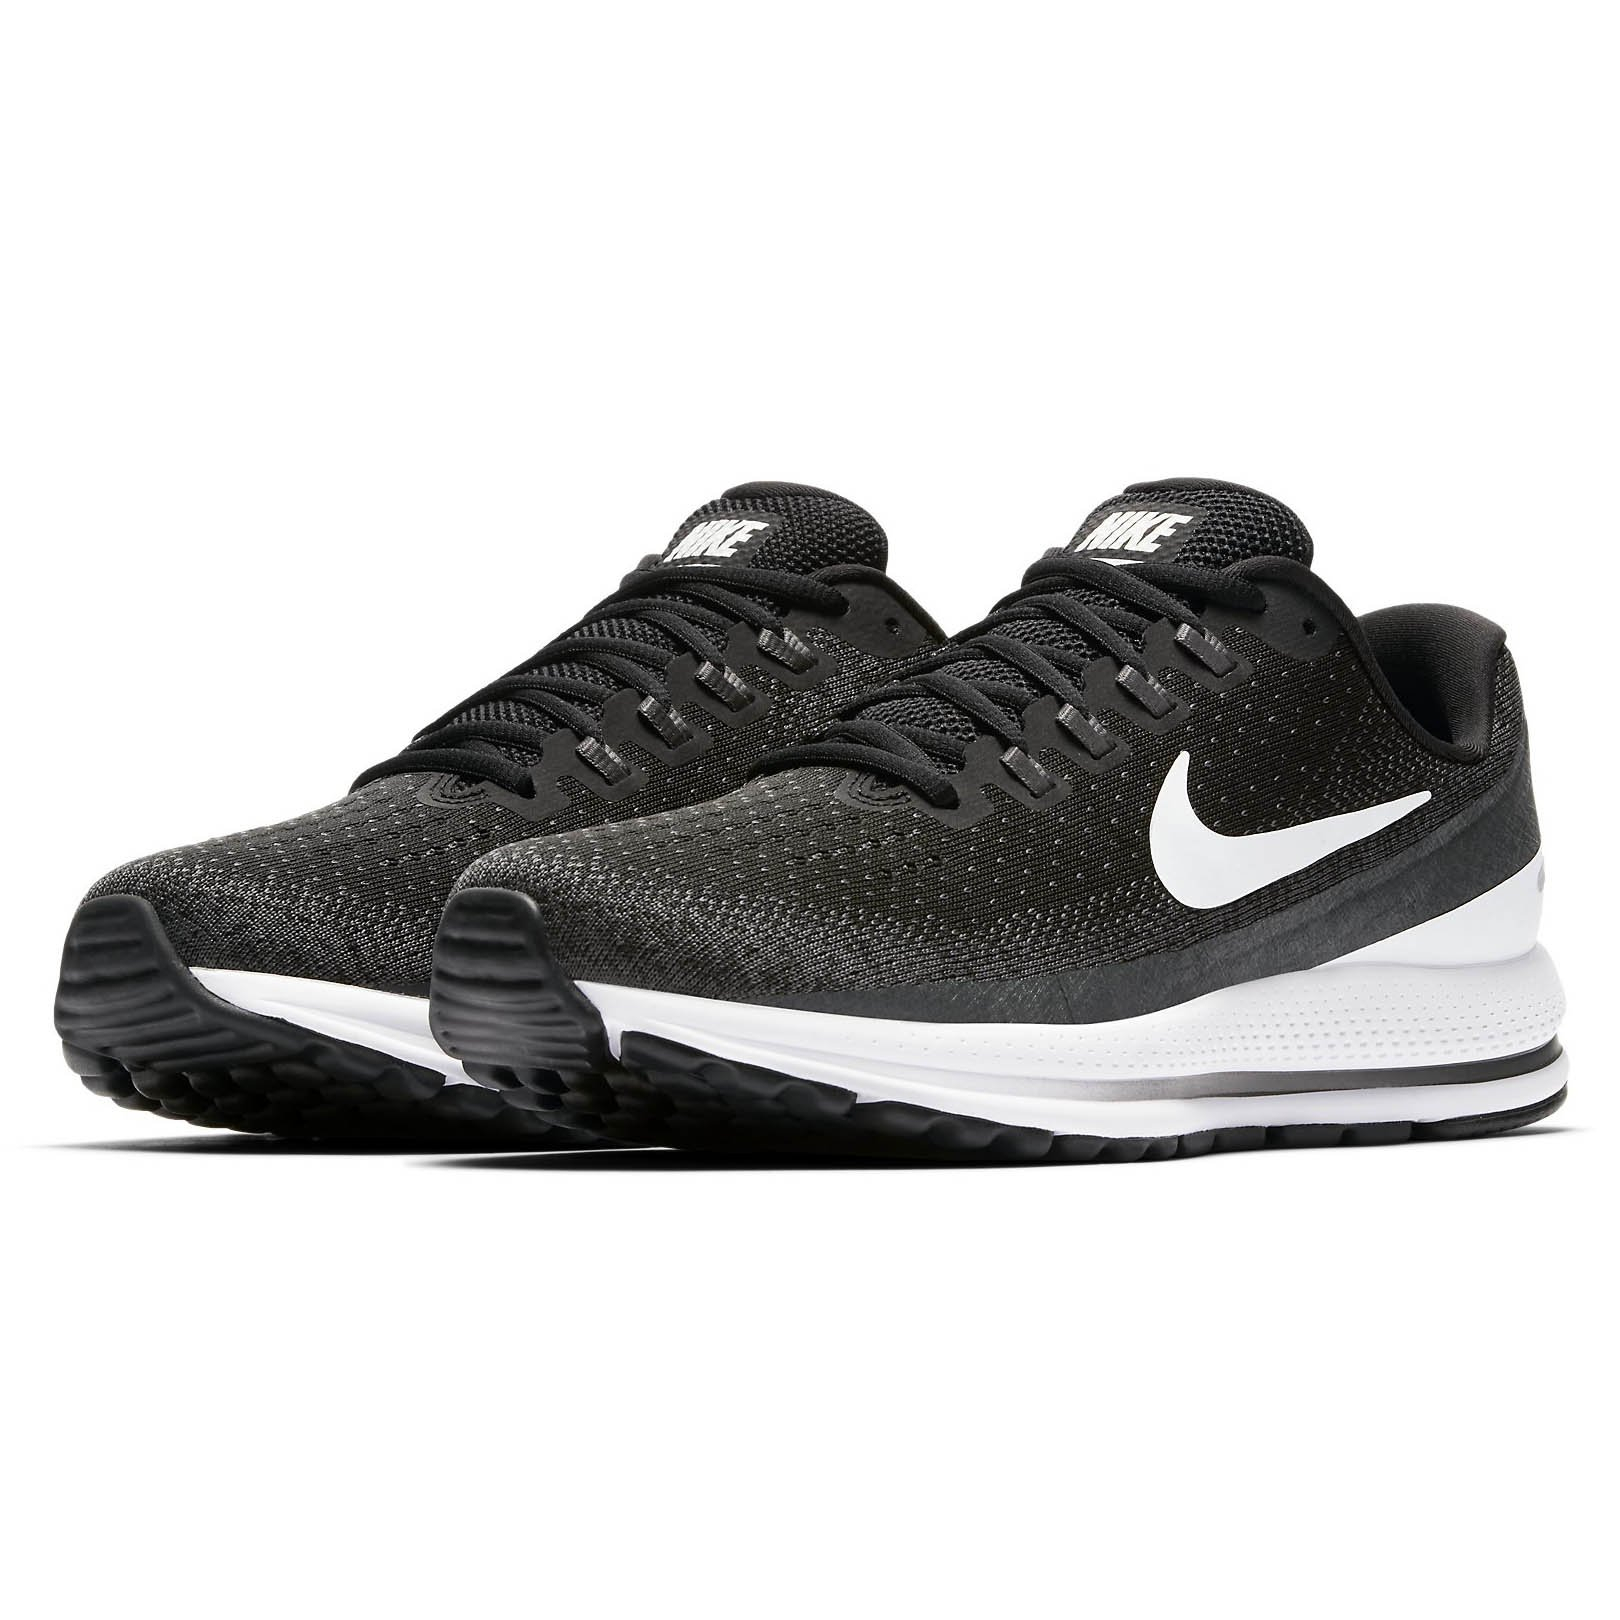 43d6e4049385 ... where can i buy nike air zoom vomero 13 gallery 4 63d85 1a4ce